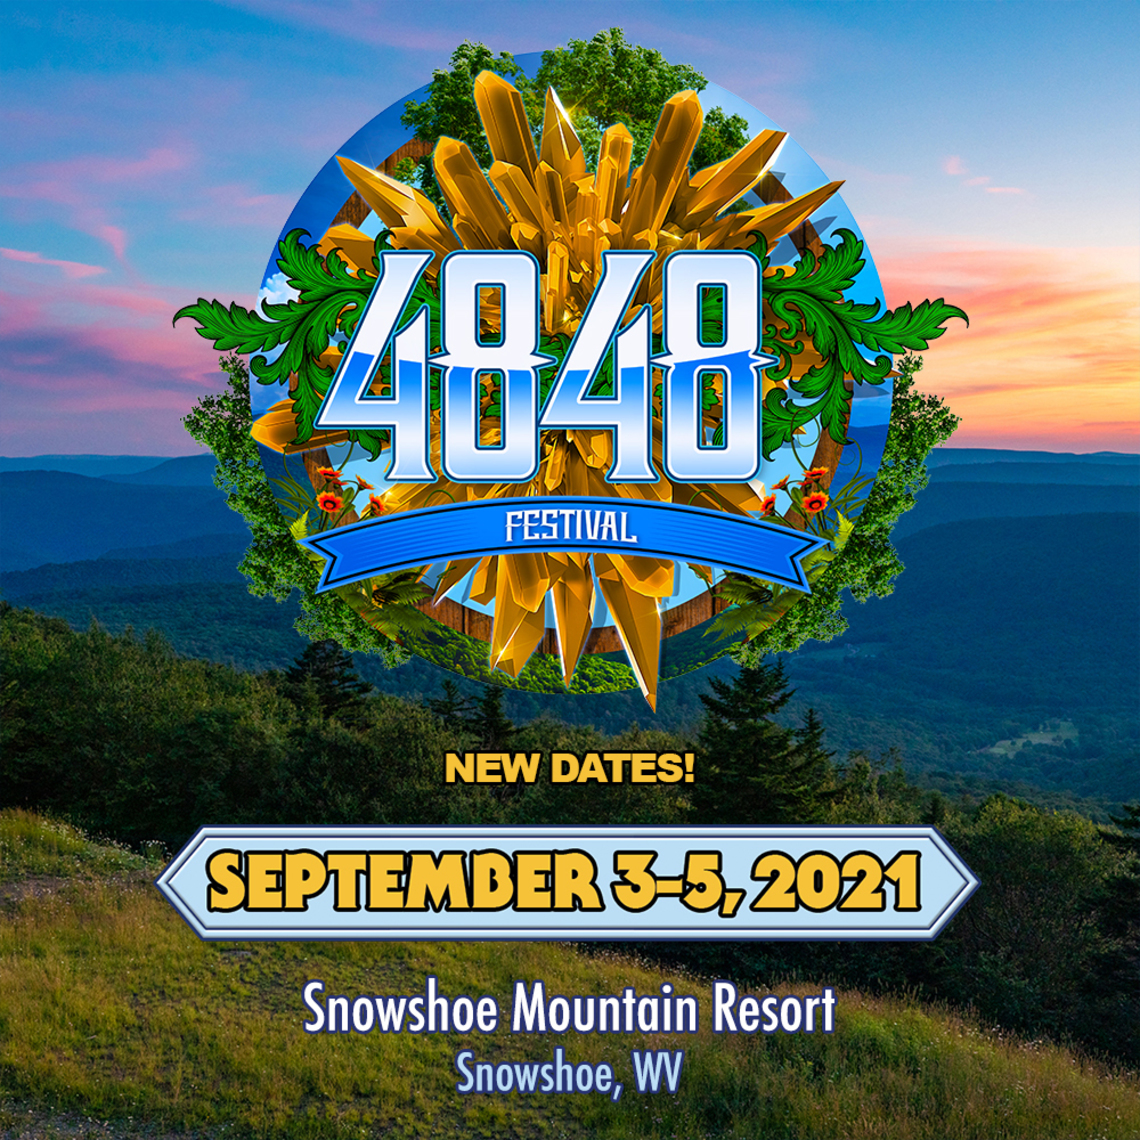 4848 Festival Announces New Dates for September 3-5